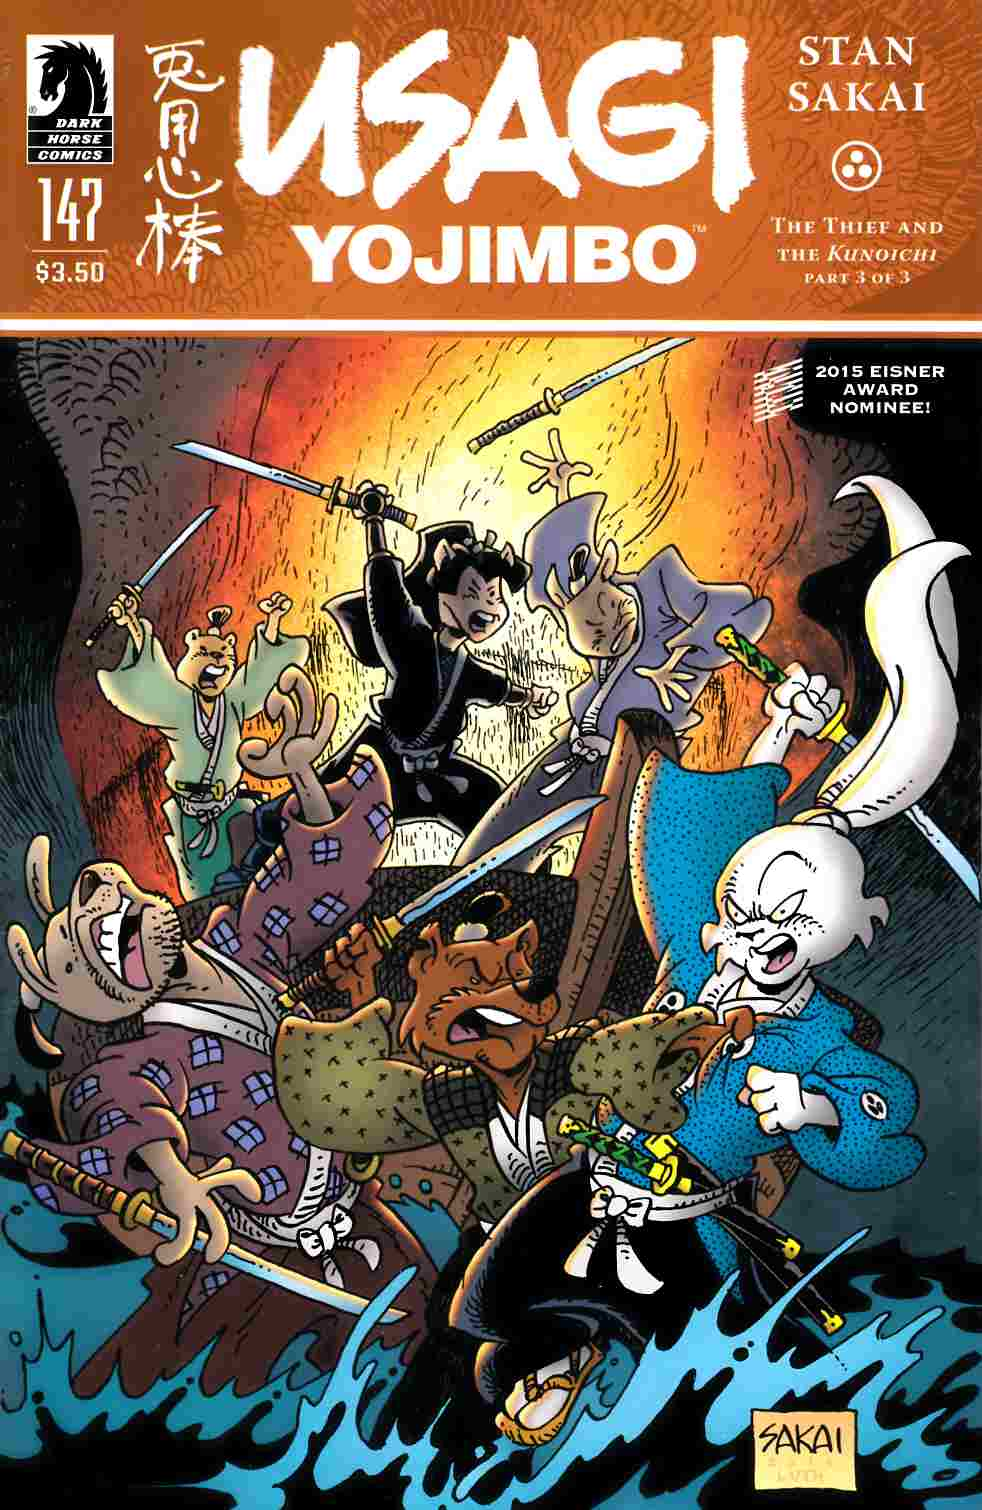 Usagi Yojimbo #147 [Dark Horse Comic] THUMBNAIL